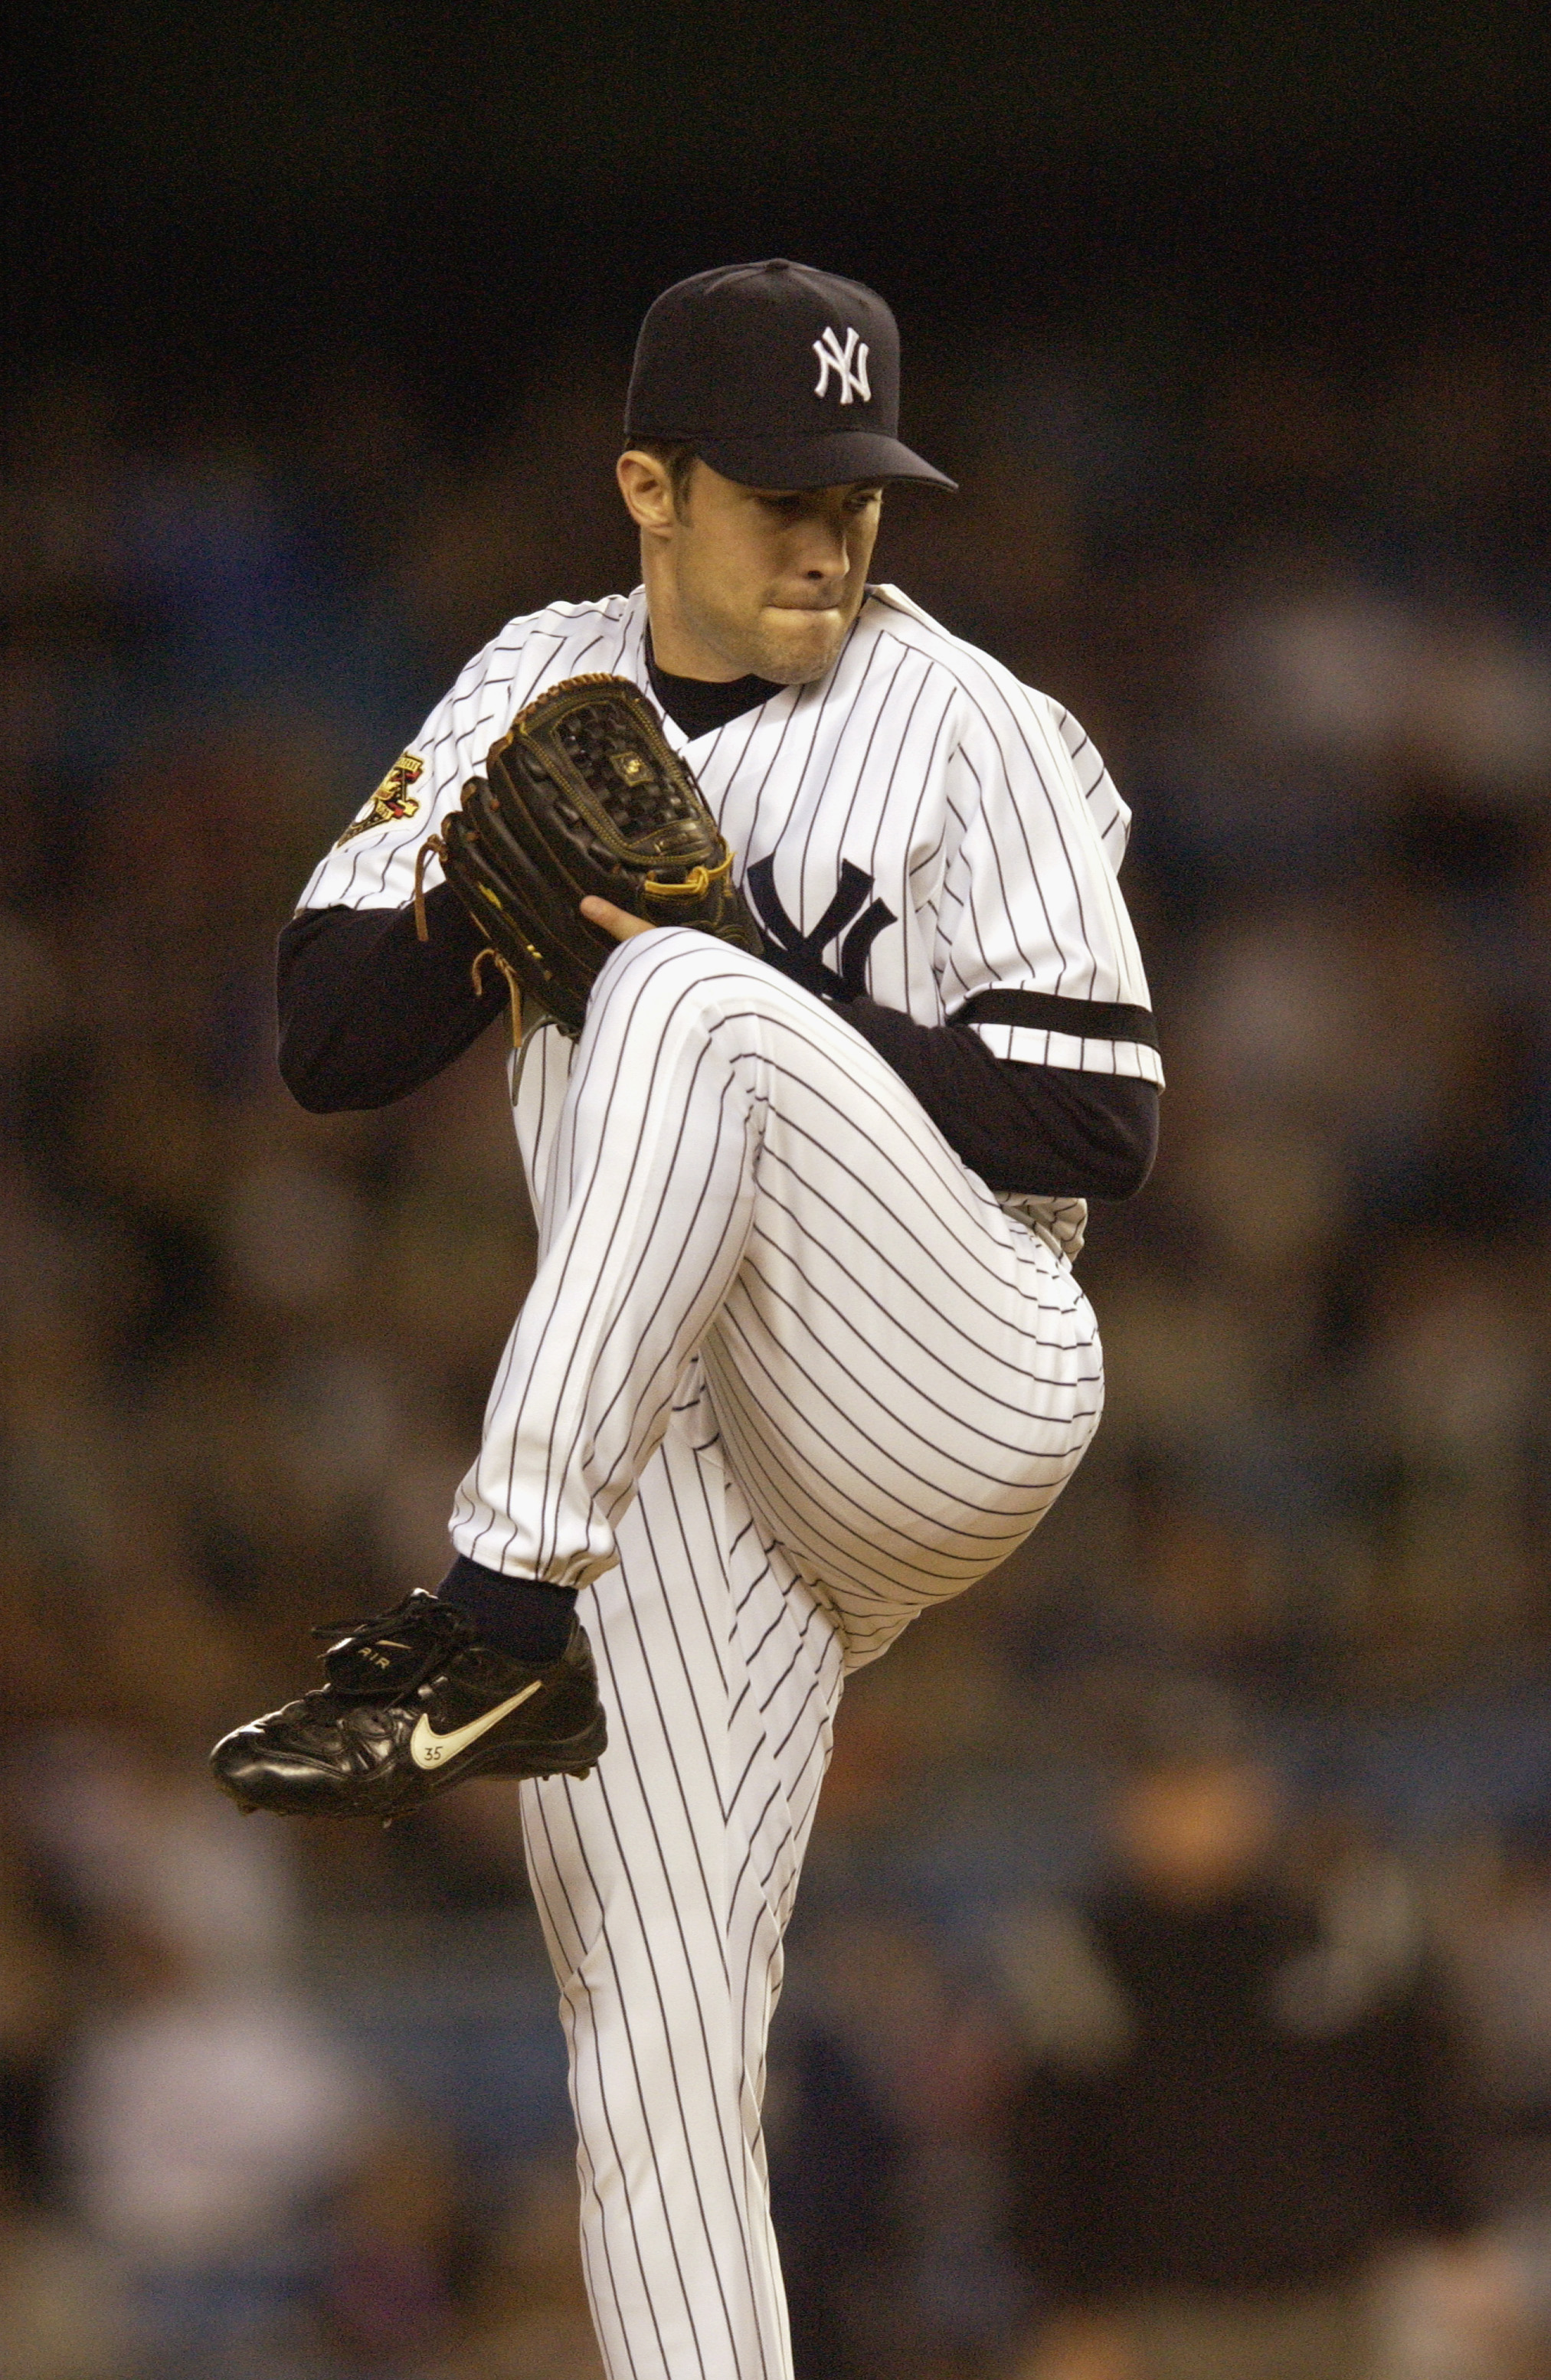 Mussina winds up